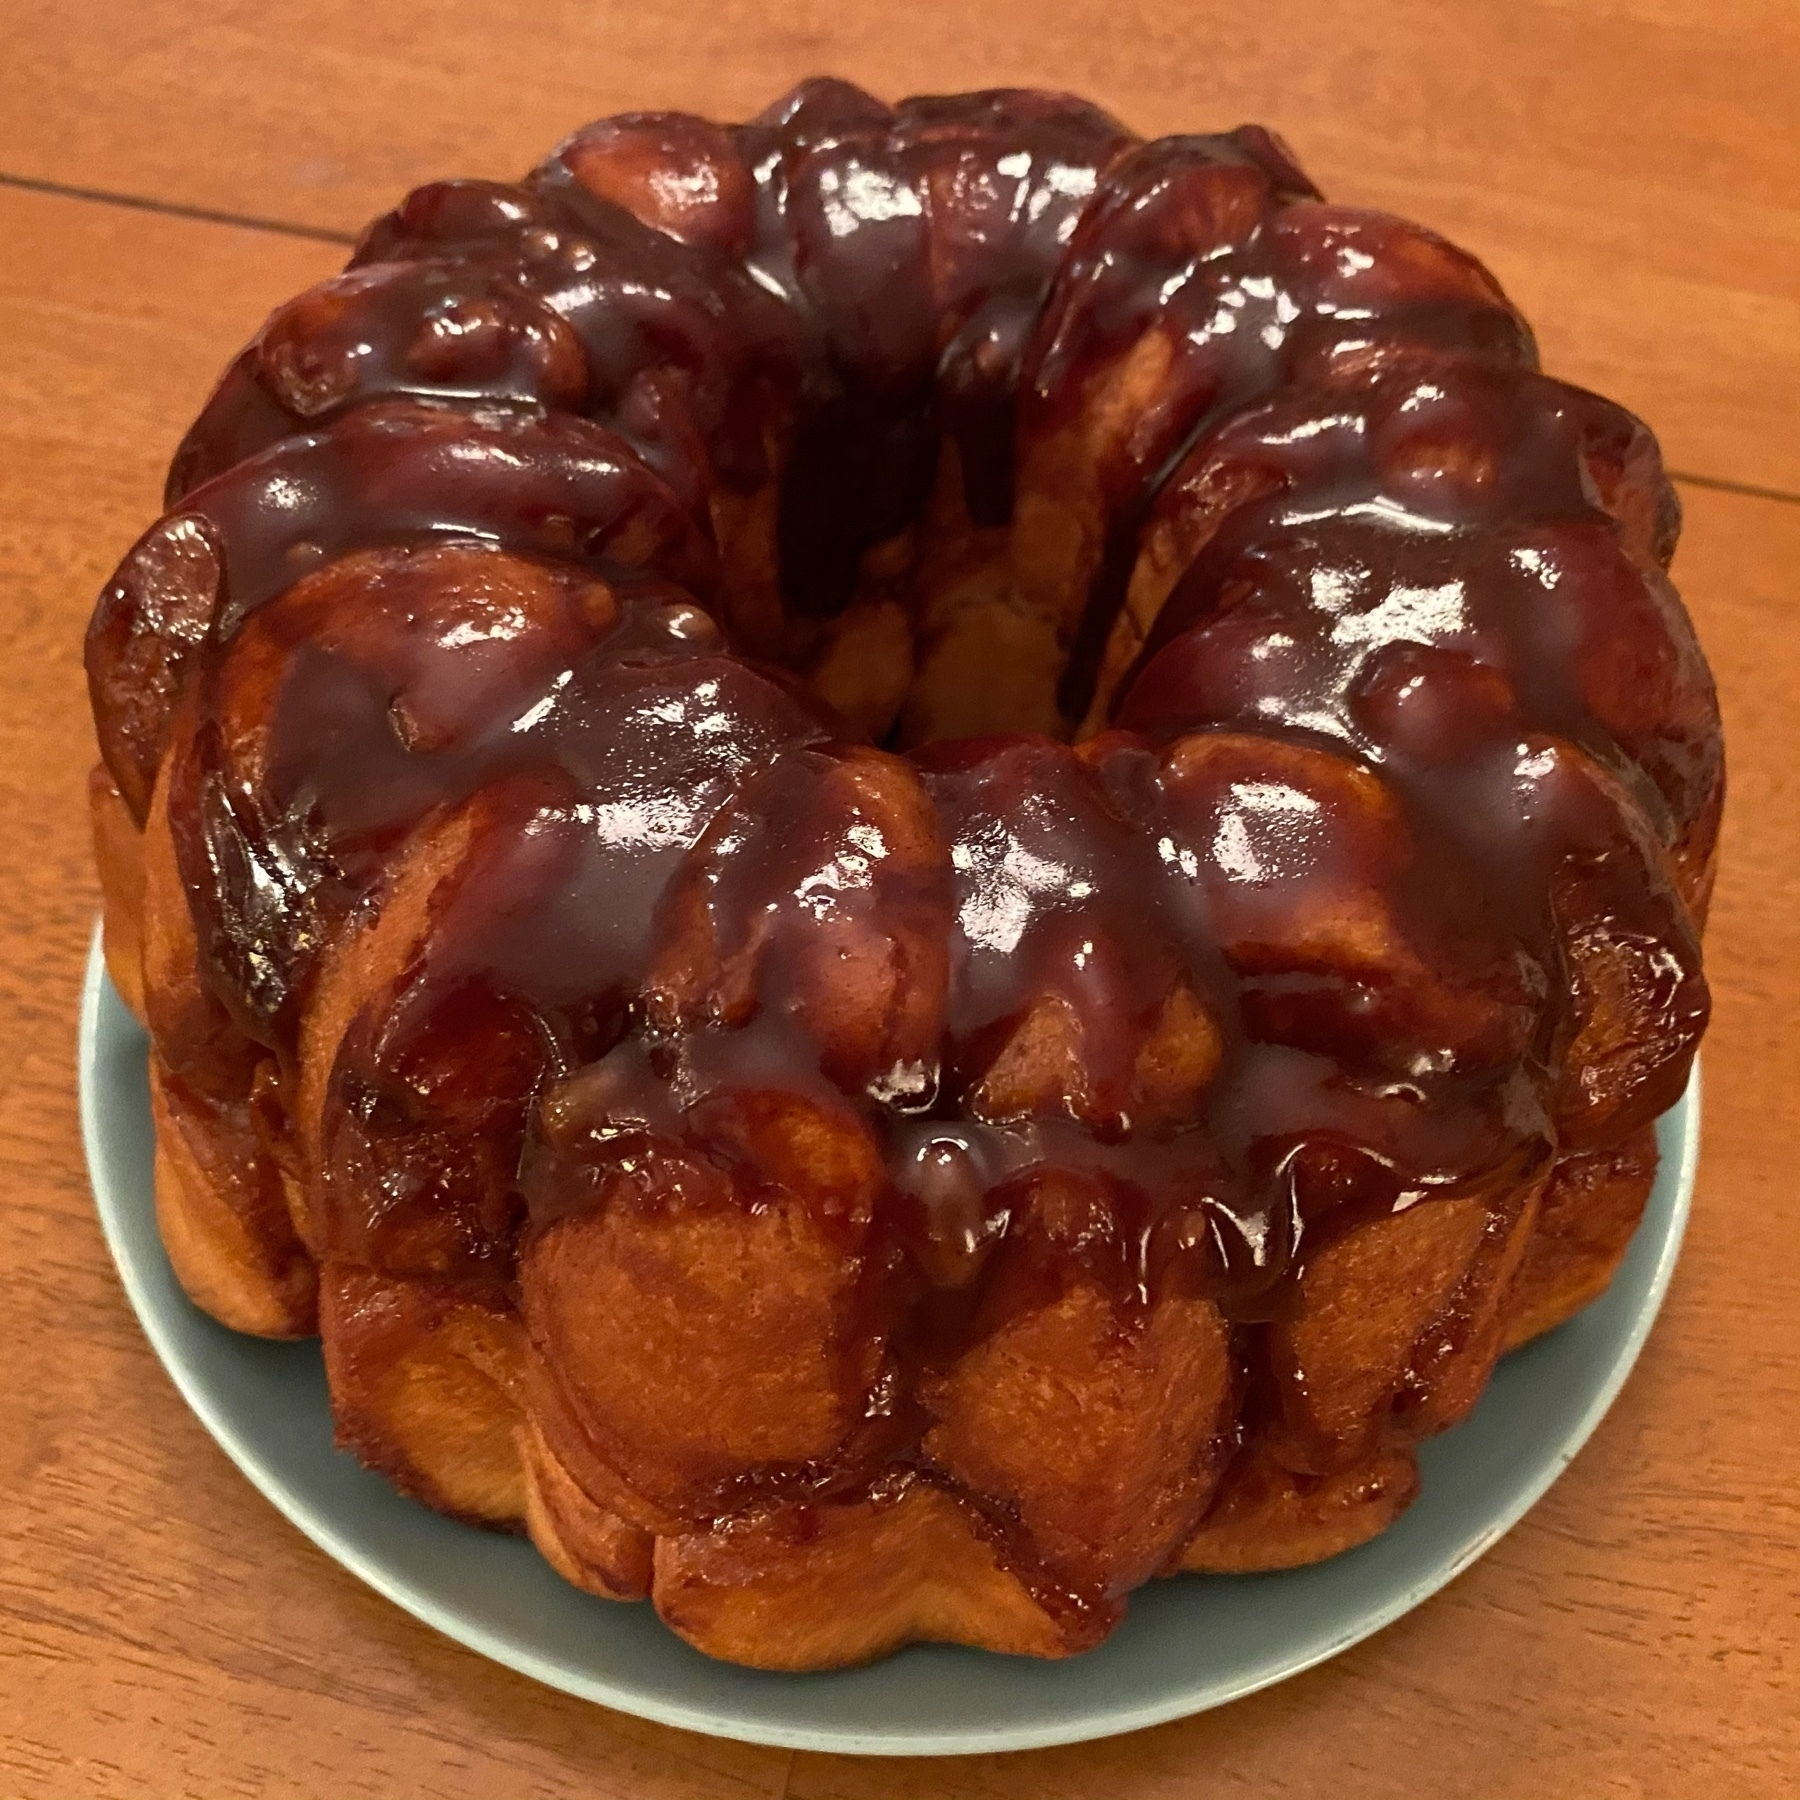 Picture of a Bundt cake with brown cinnamon icing.